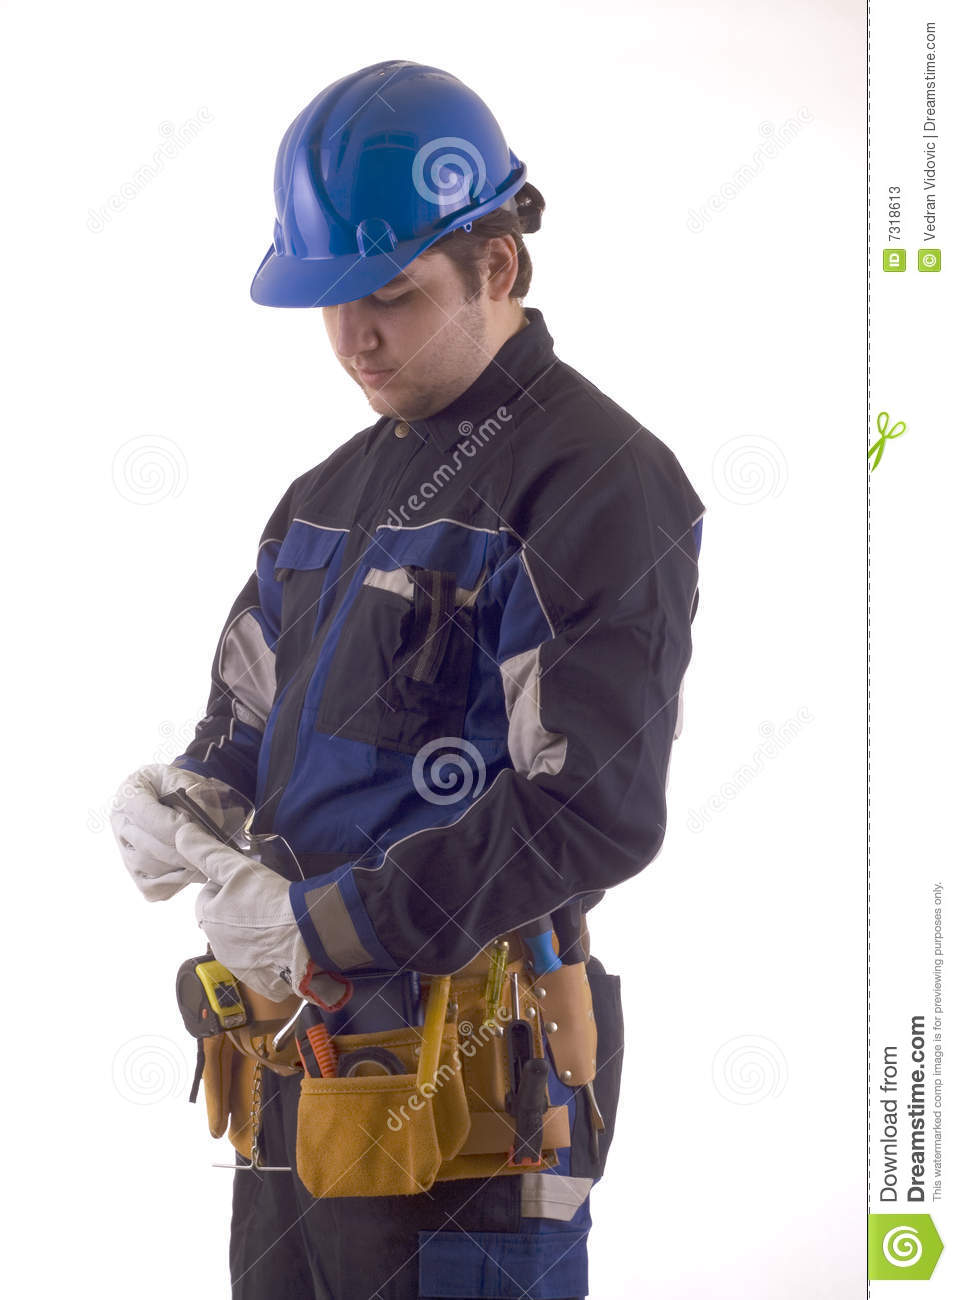 Construction Halloween Costumes